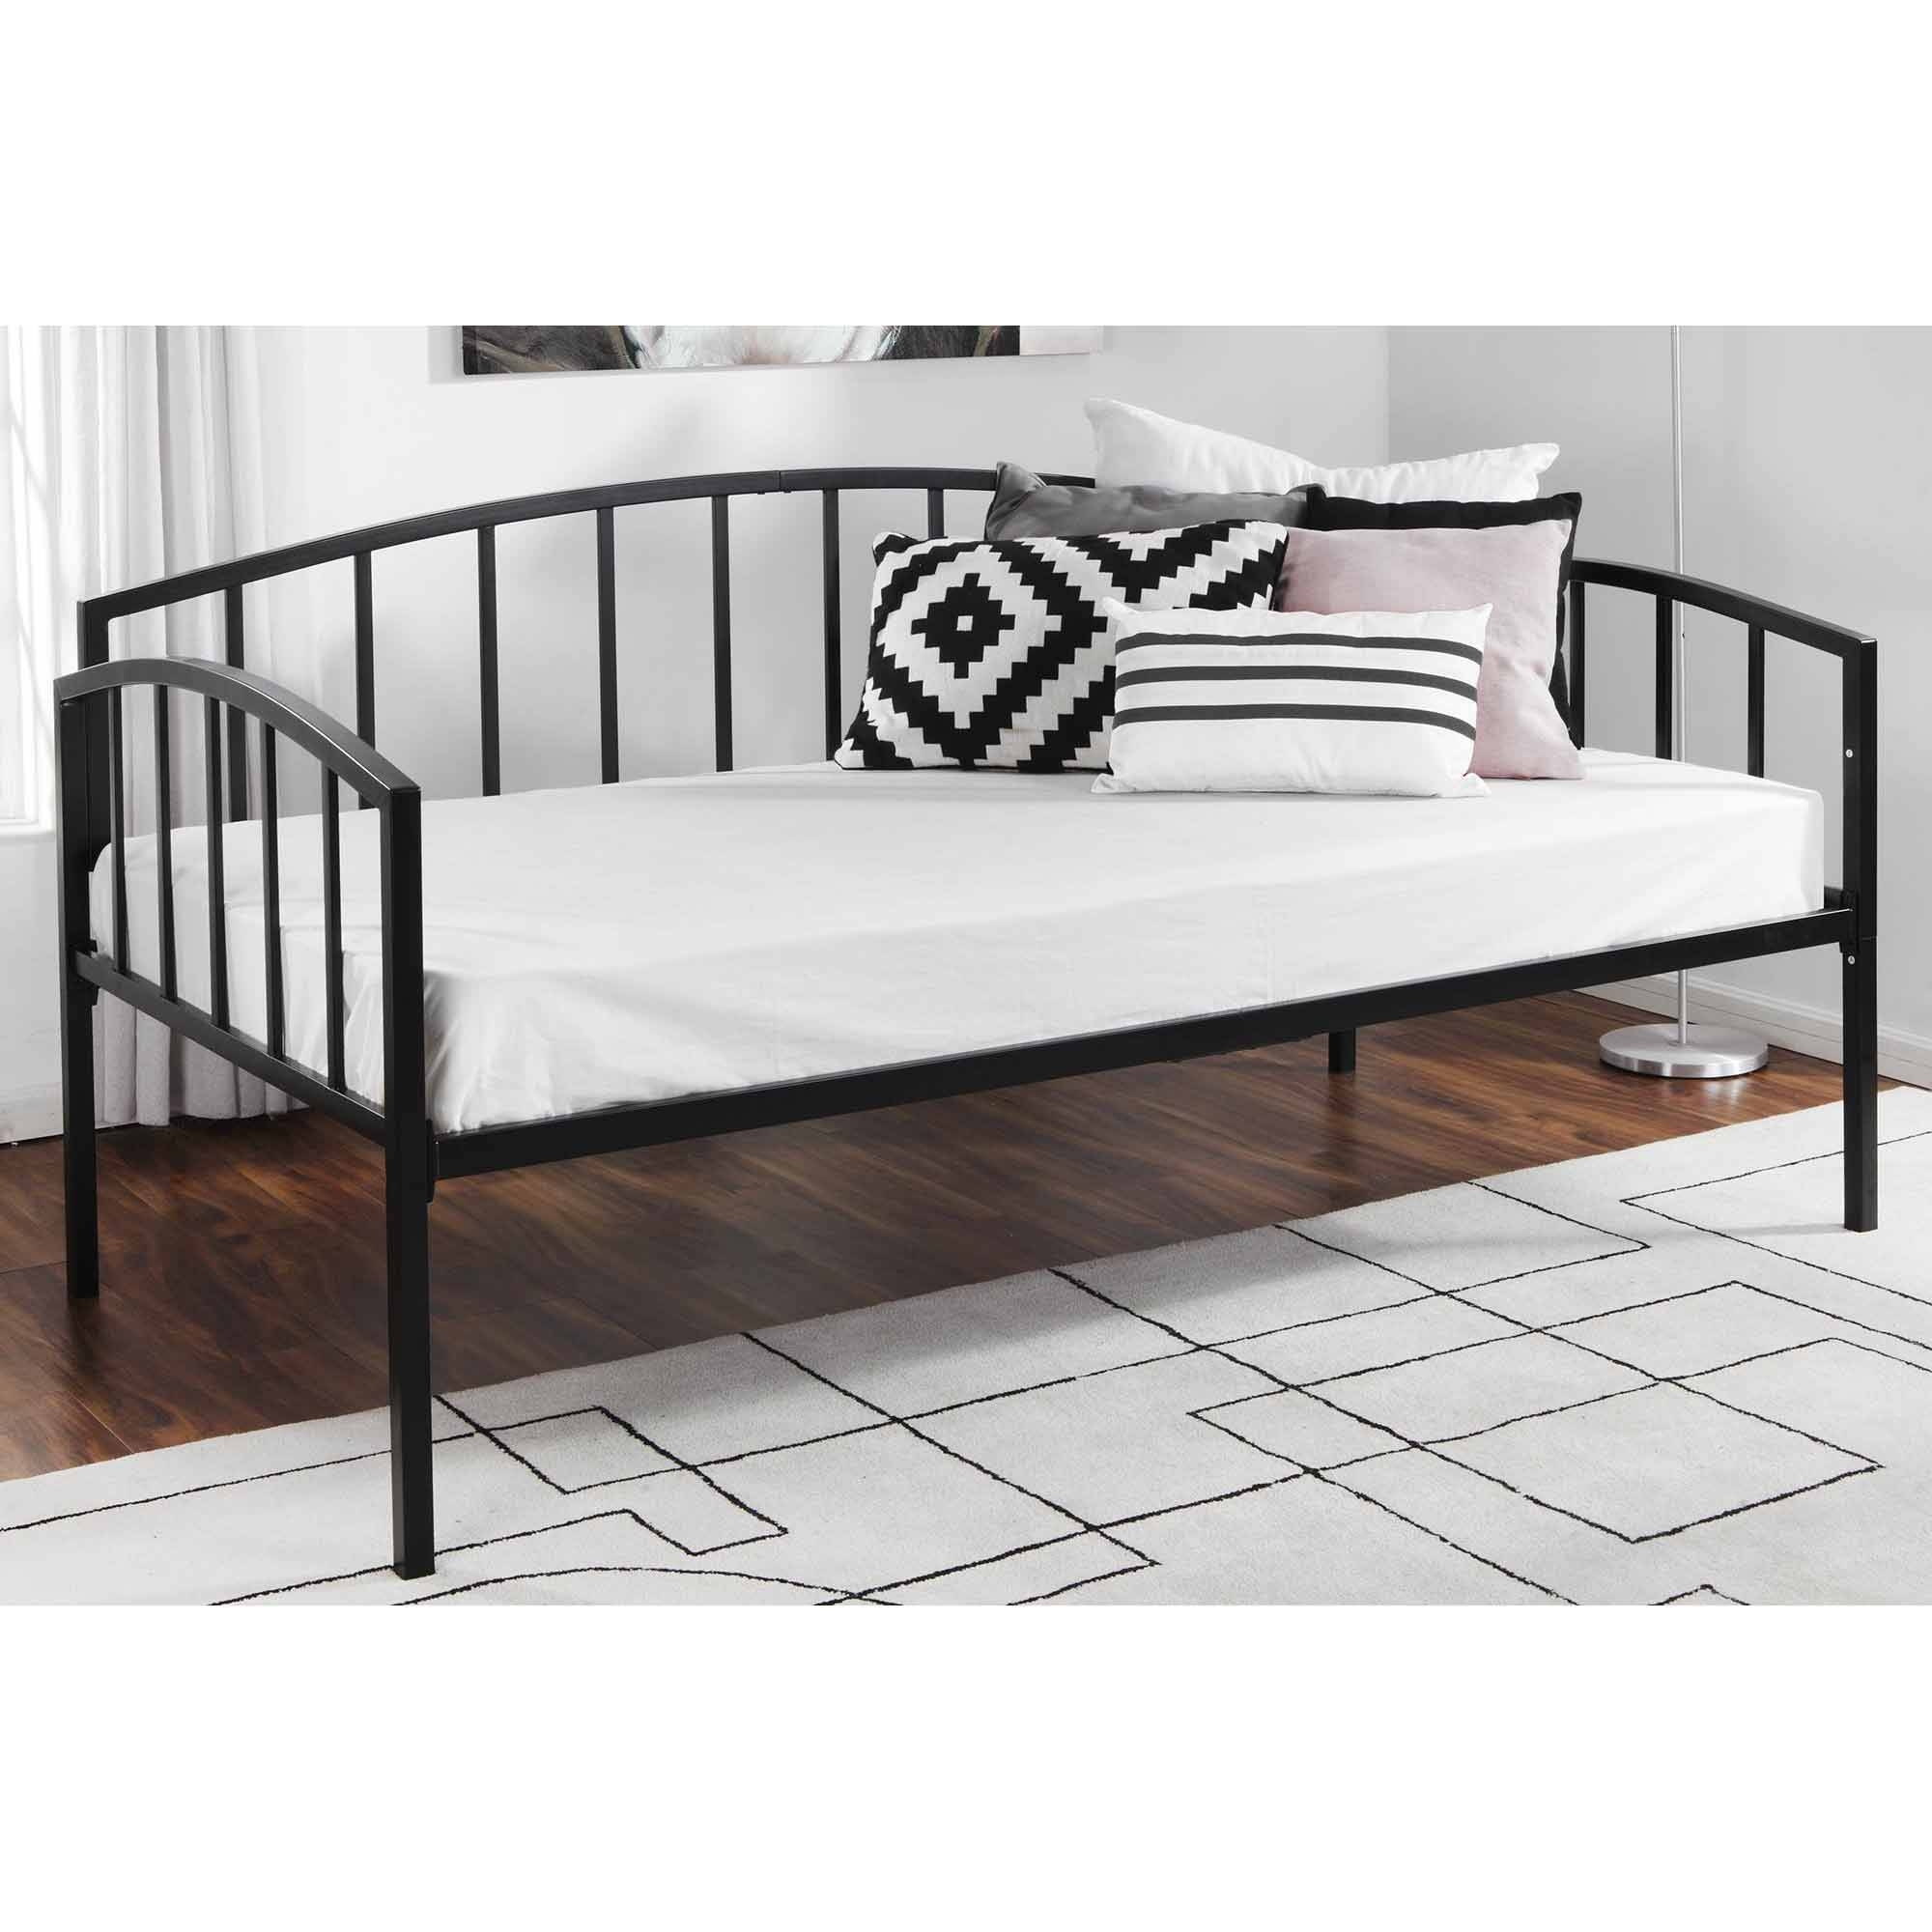 Narrow Twin Bed Frame